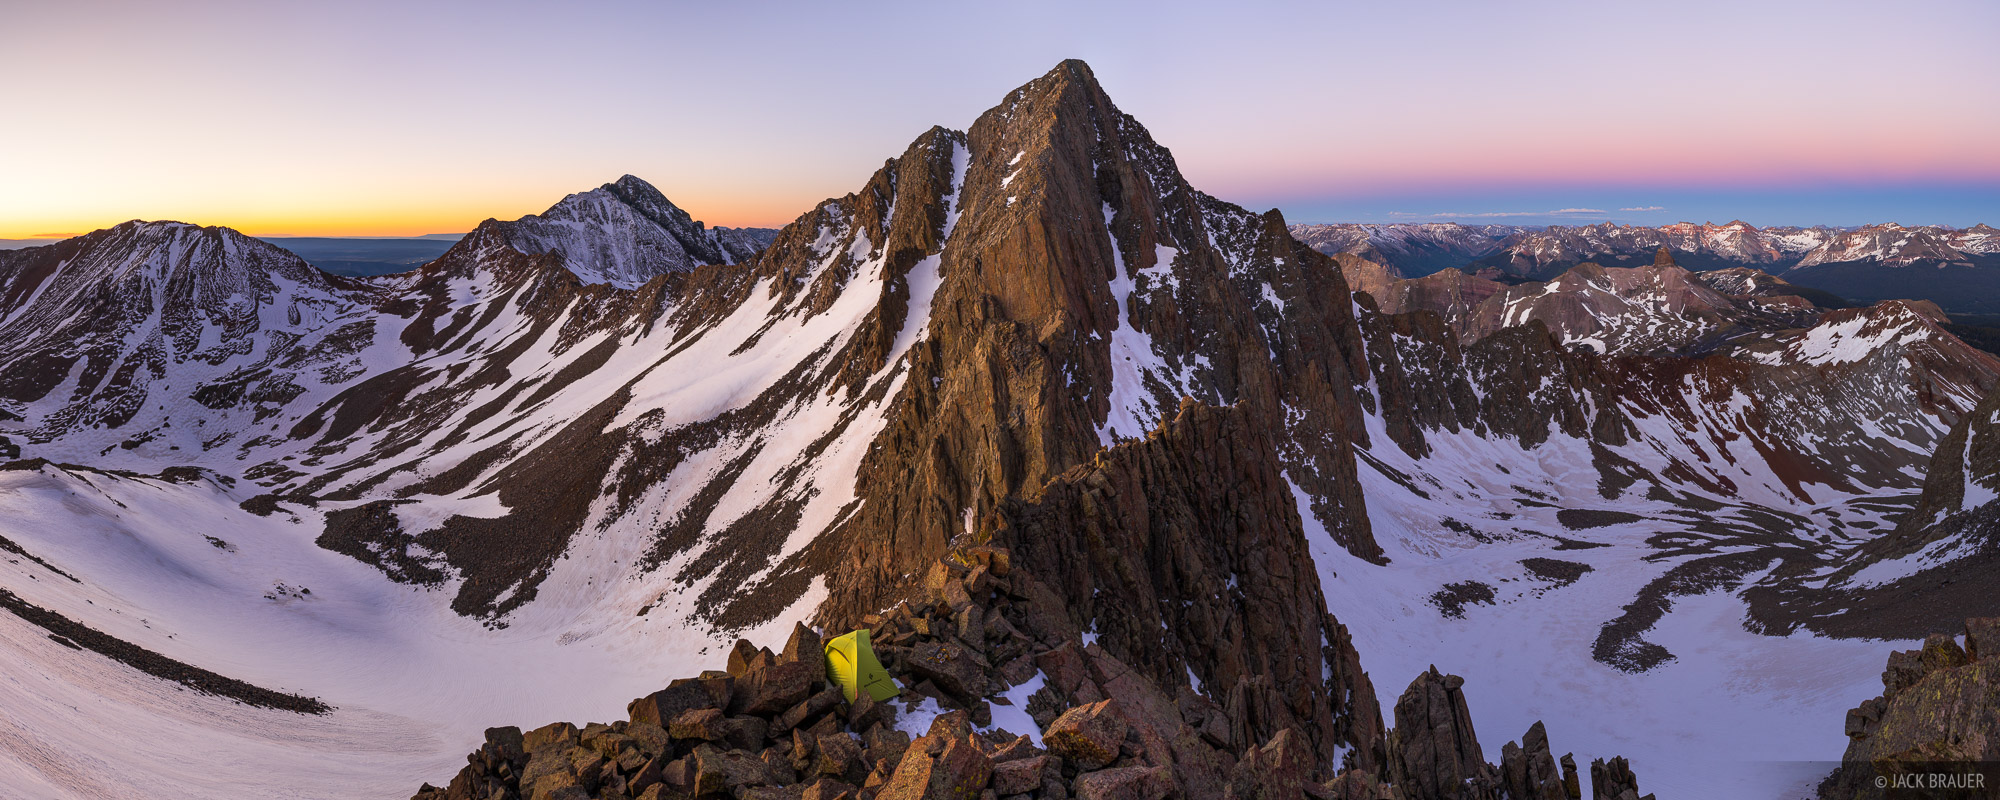 Colorado, Gladstone Peak, Lizard Head Wilderness, San Juan Mountains, San Miguel Range, tent, earthshadow, panorama